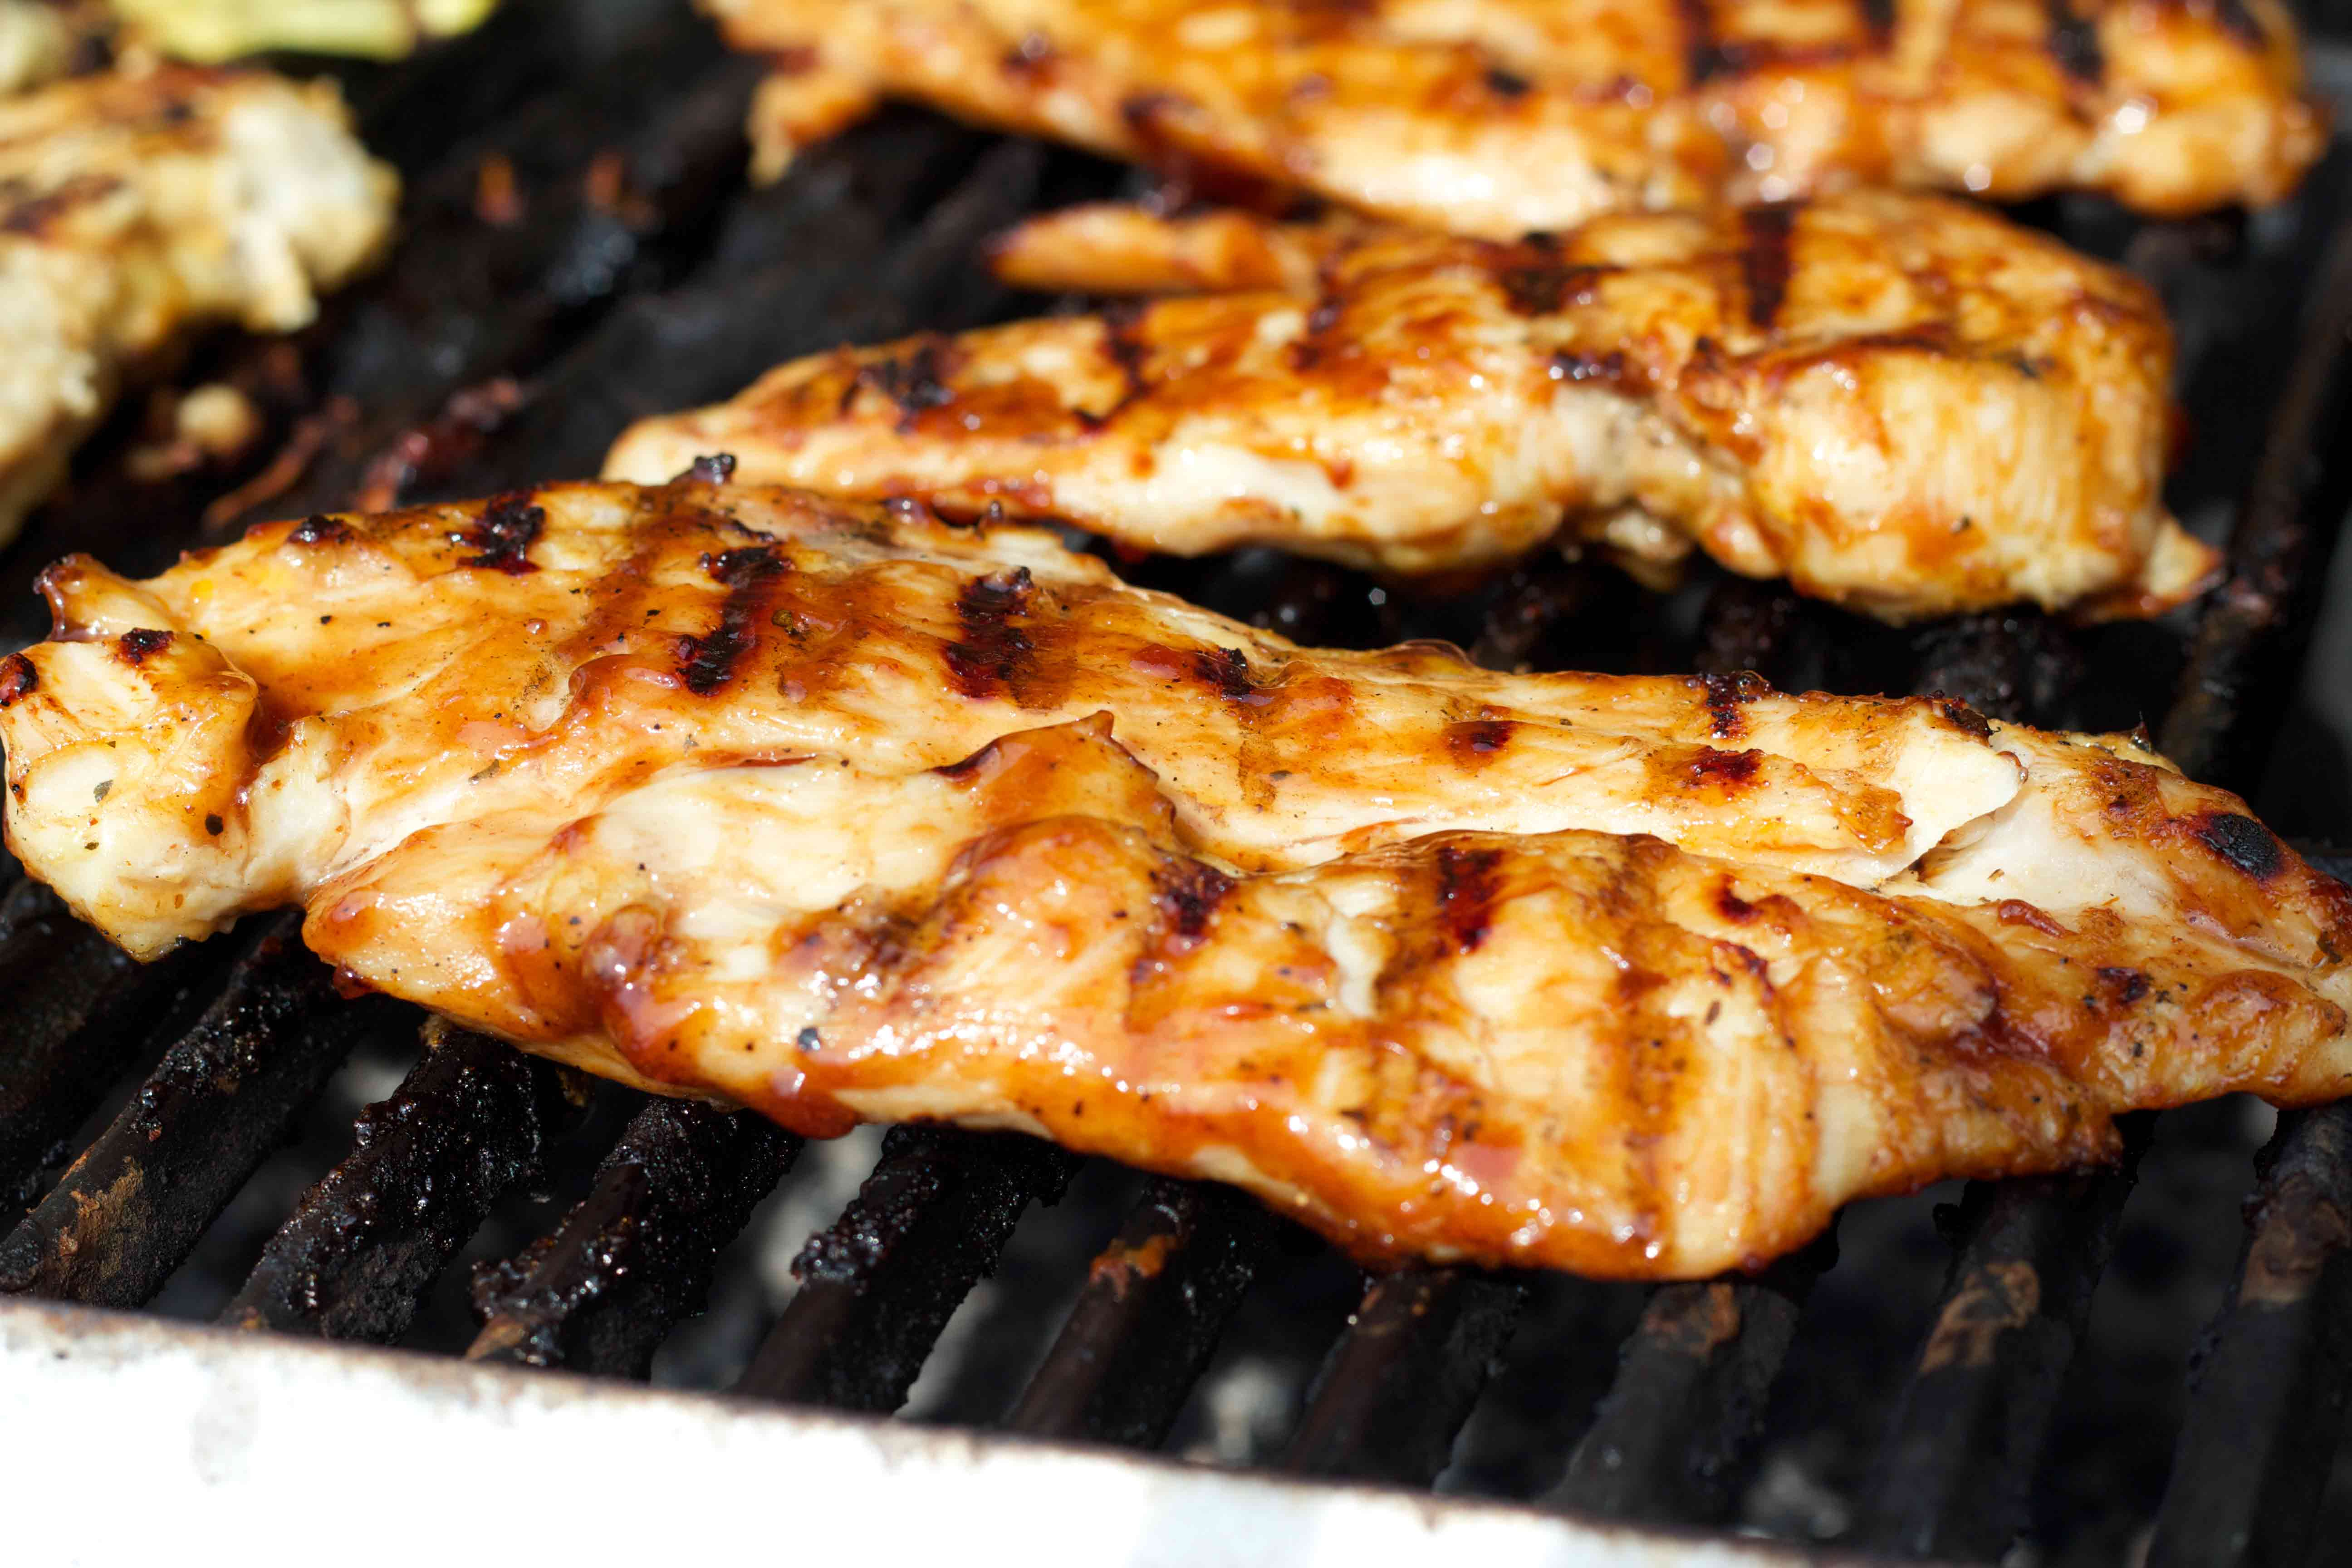 The best way to have barbecue chicken on the grill! Weight-loss surgery patients will love this.